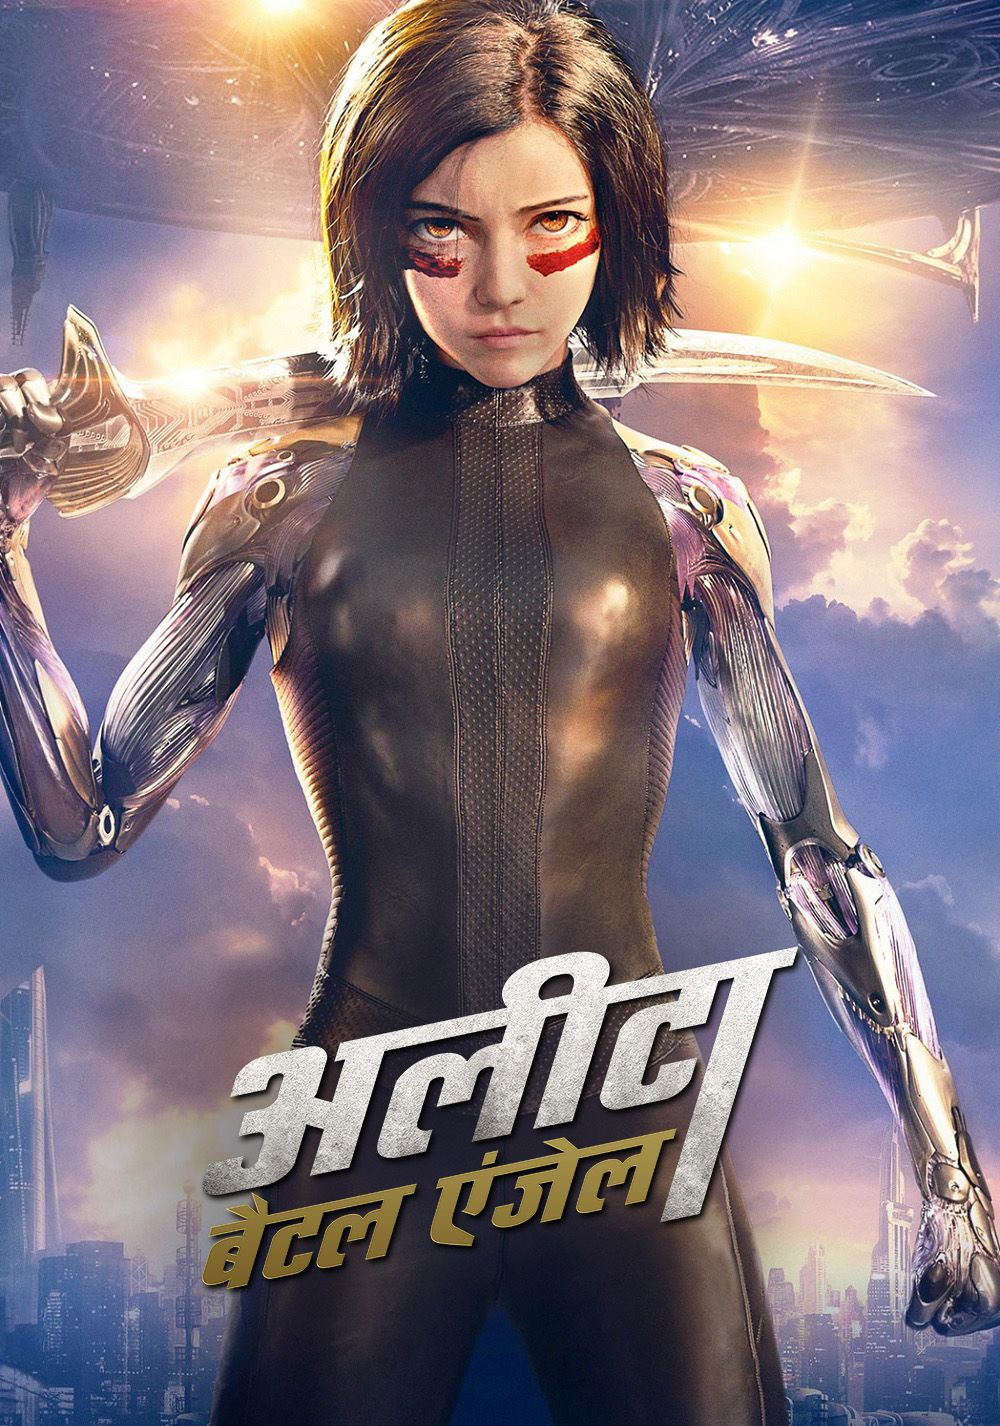 Alita Battle Angel (2019) 720p + 1080p BluRay x264 ESubs Dual Audio [Hindi DD5.1 + English DD5.1]